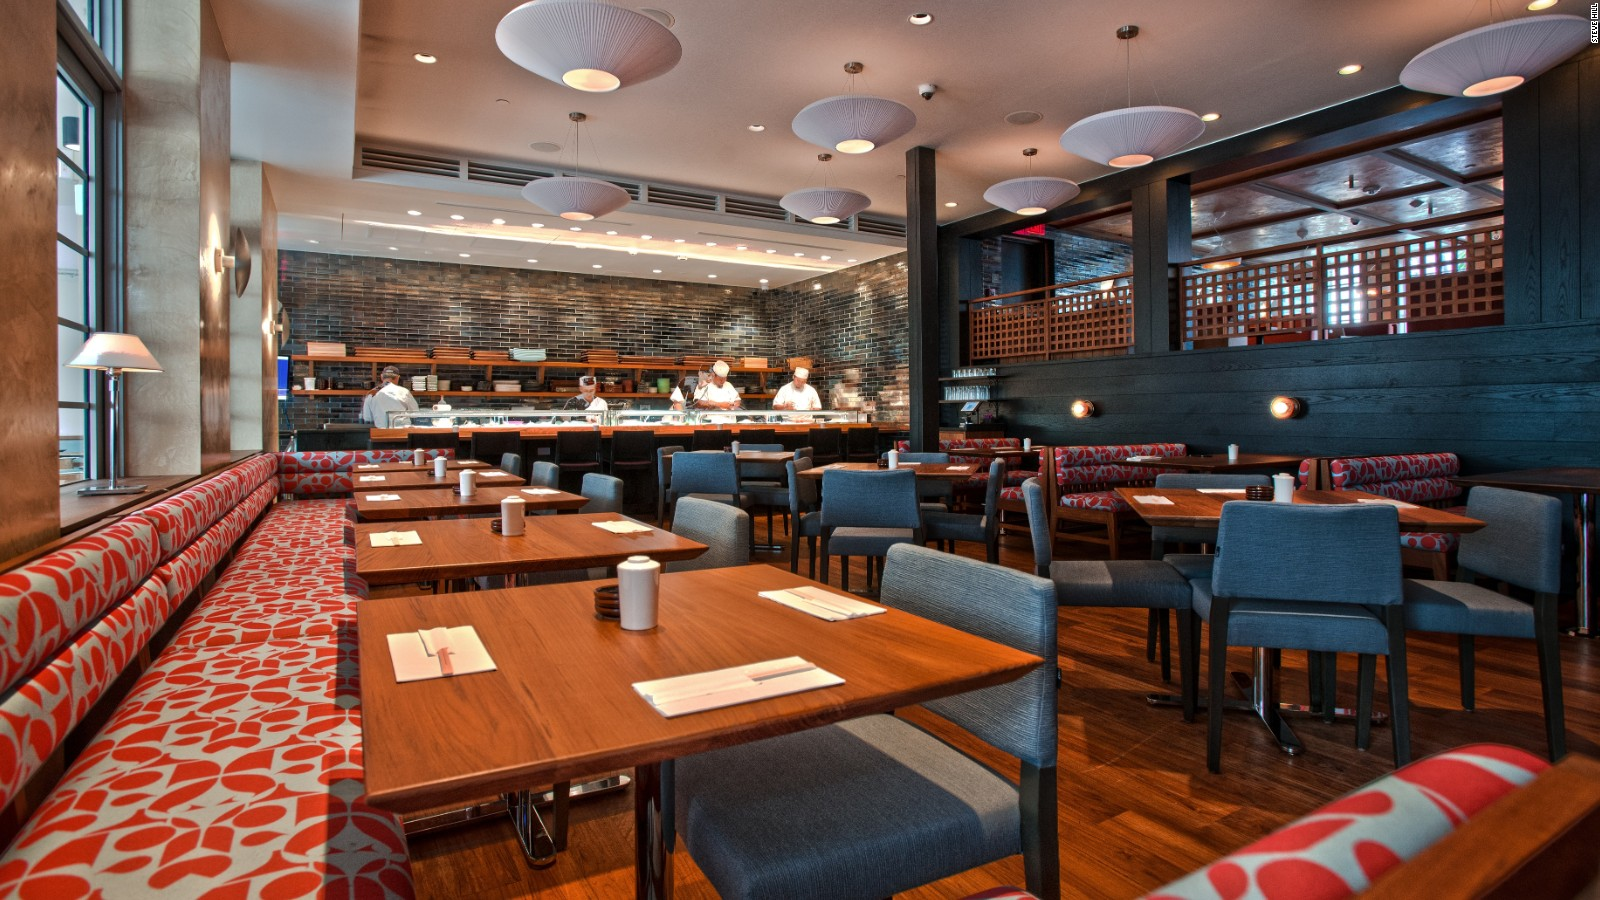 New York Restaurants In Miami Whats The Connection Cnn Travel